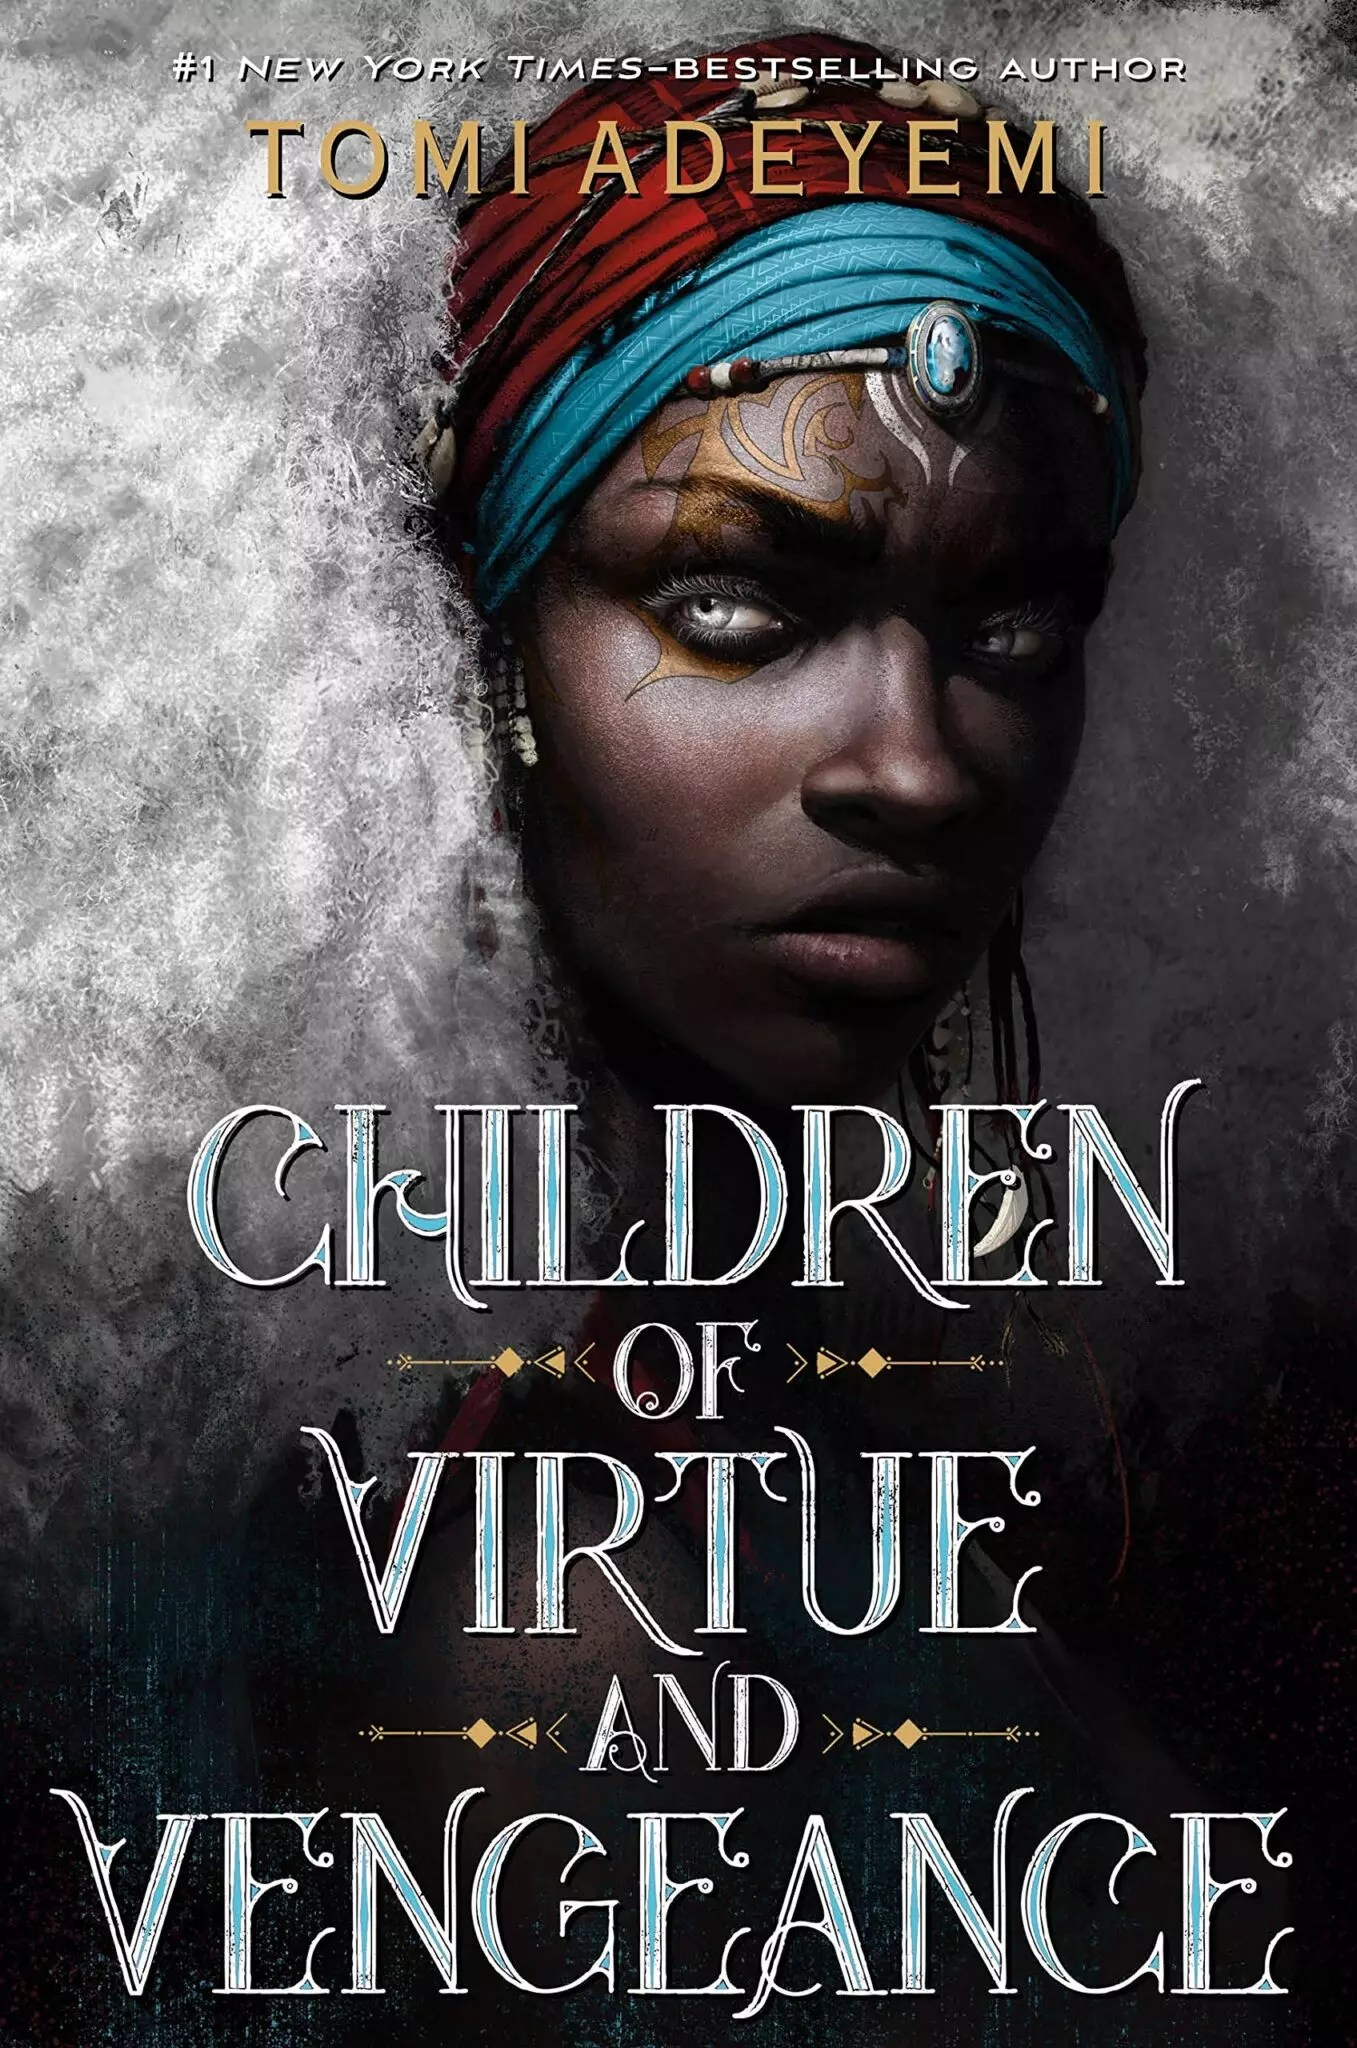 tomi adeyami children of virtue vengeance US cover